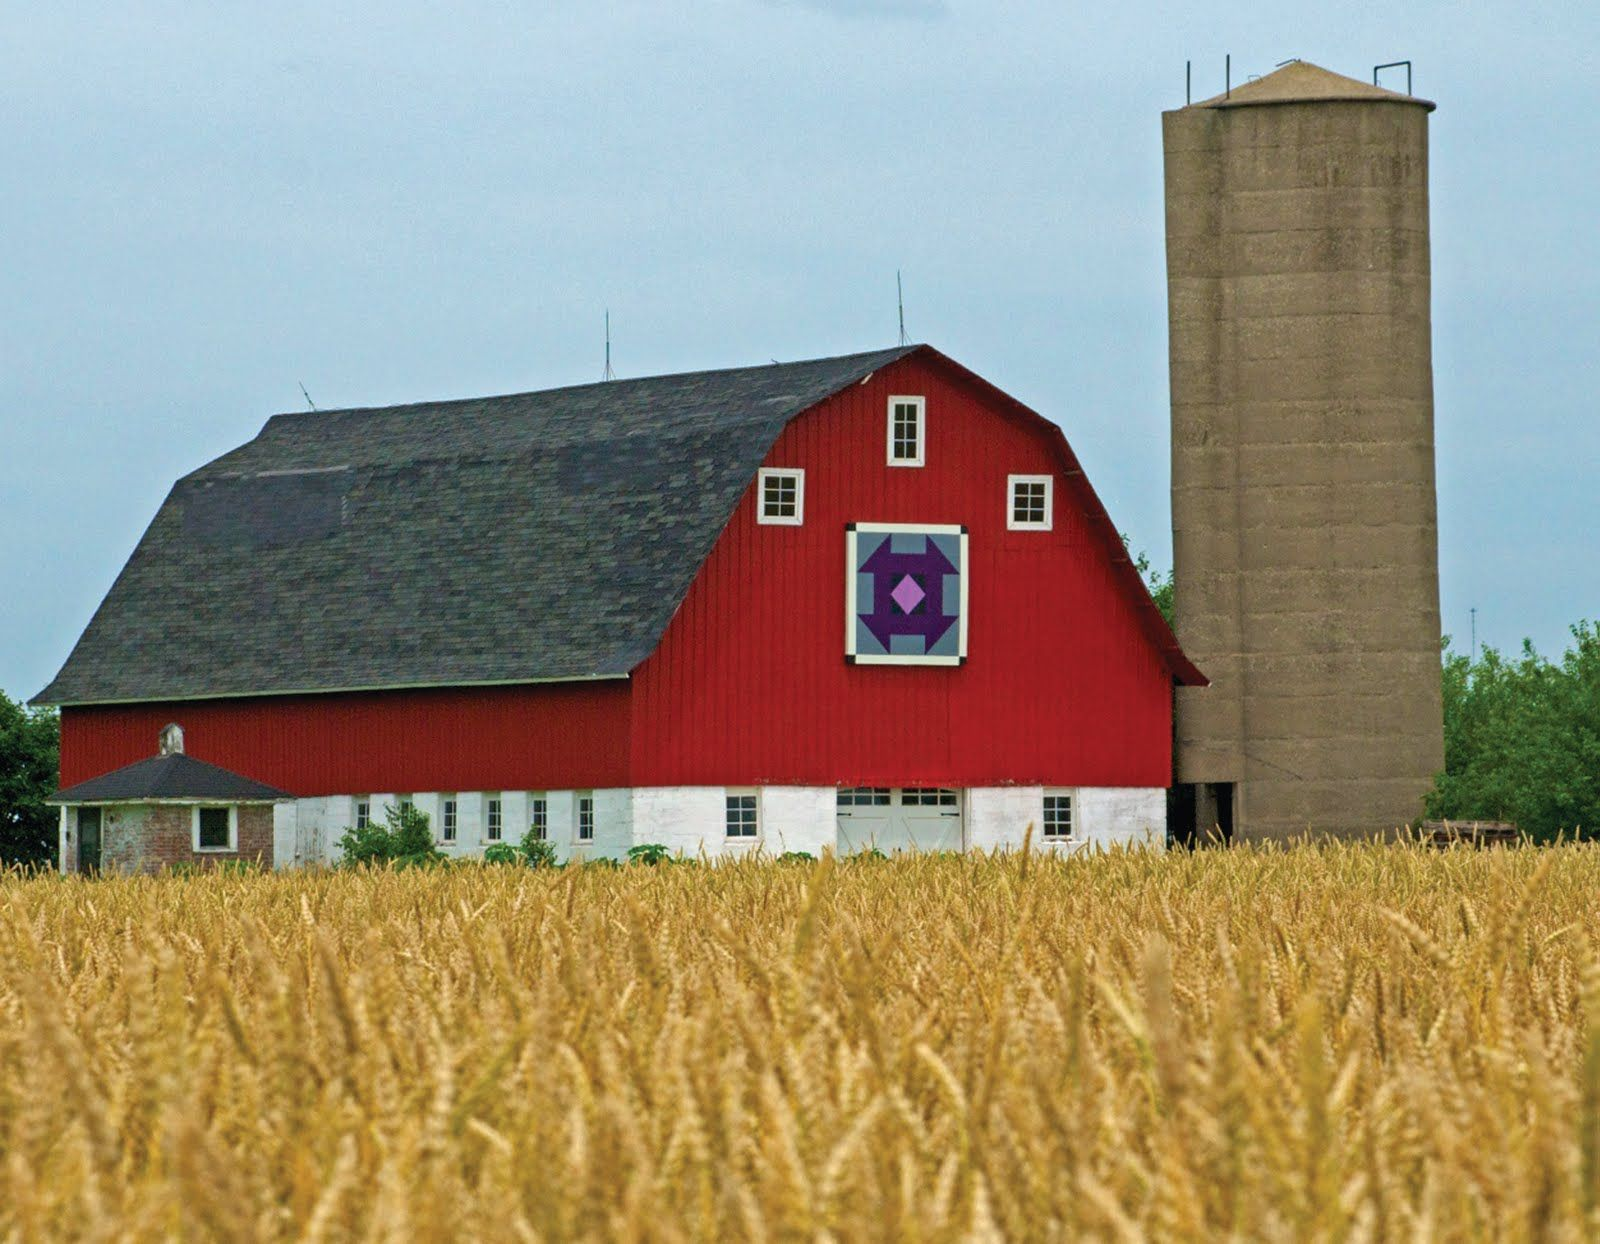 Pennsylvania dutch barn barn stars rose from pennsylvania dutch pennsylvania dutch barn barn stars rose from pennsylvania dutch tradition not amish hex signs barns disappearing from the landscape pinterest biocorpaavc Images